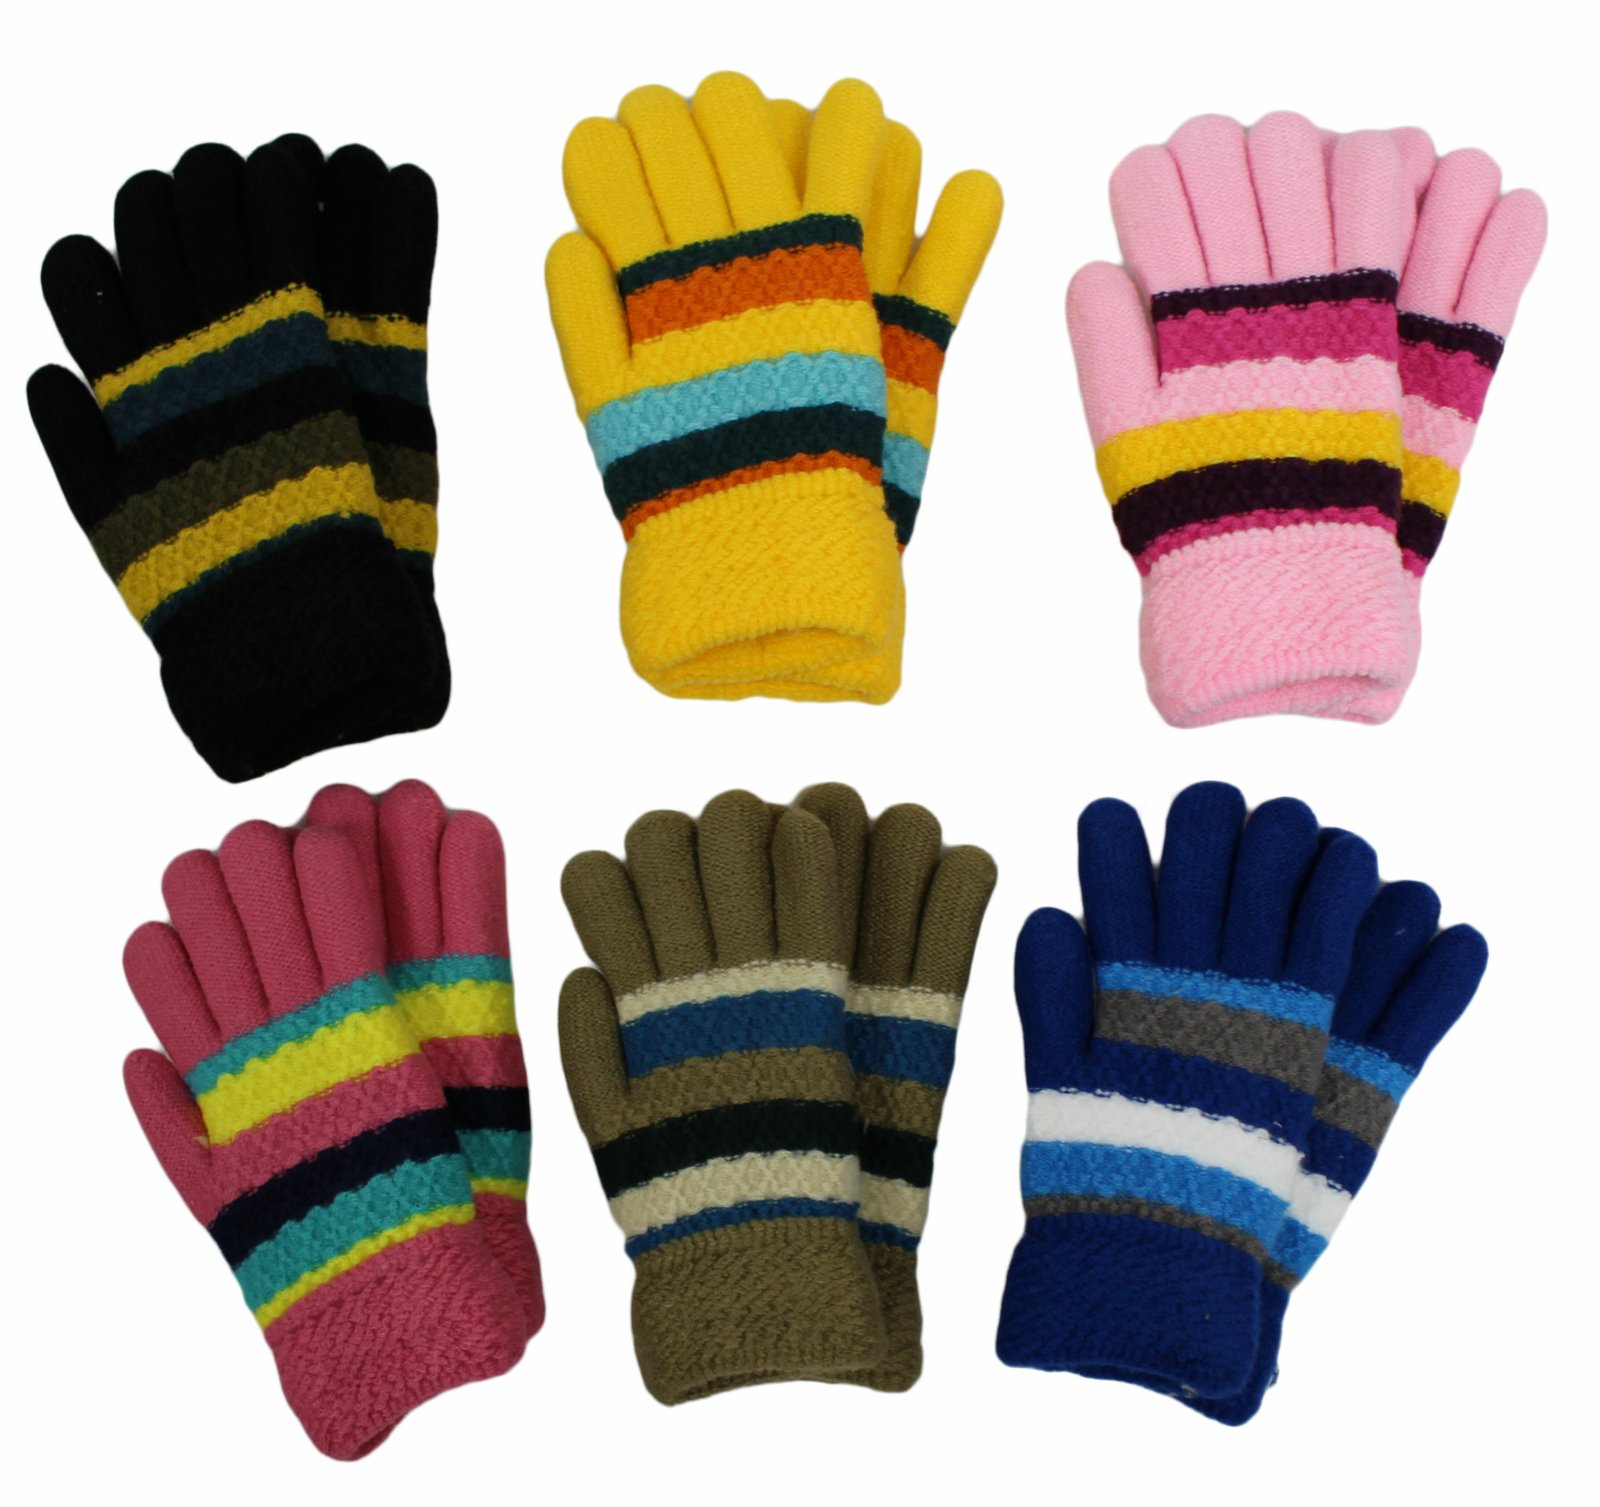 Gilbin's Kid's Solid Fur-Lined Knit Gloves (6-Pair Size 5-8)